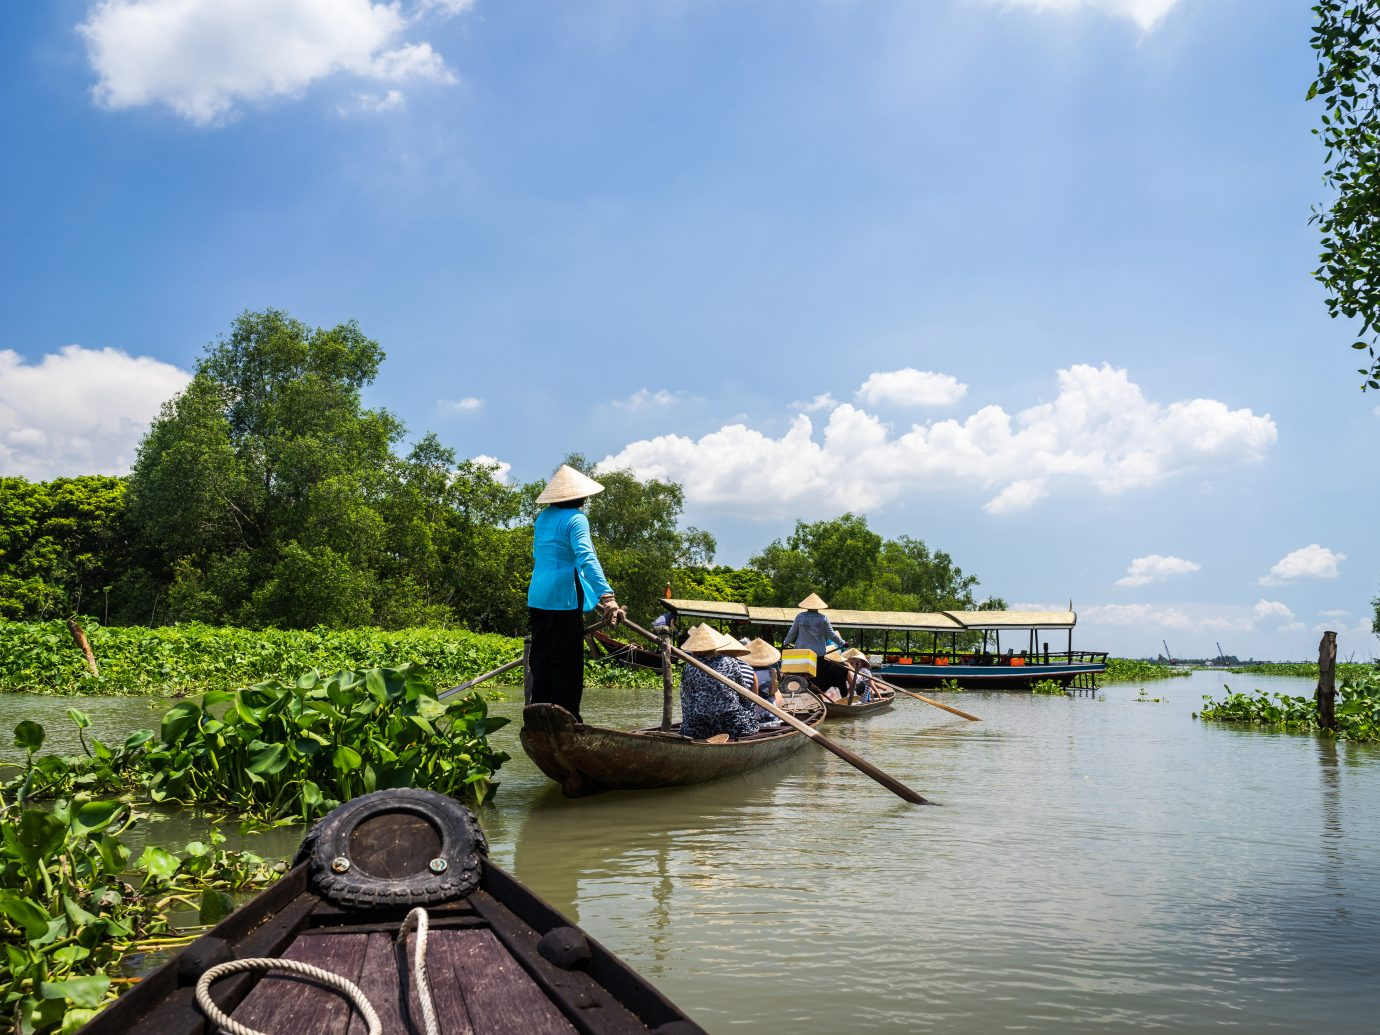 Tourism rowing boat in Tra Su flooded indigo plant forest in An Giang, Mekong delta, Vietnam.